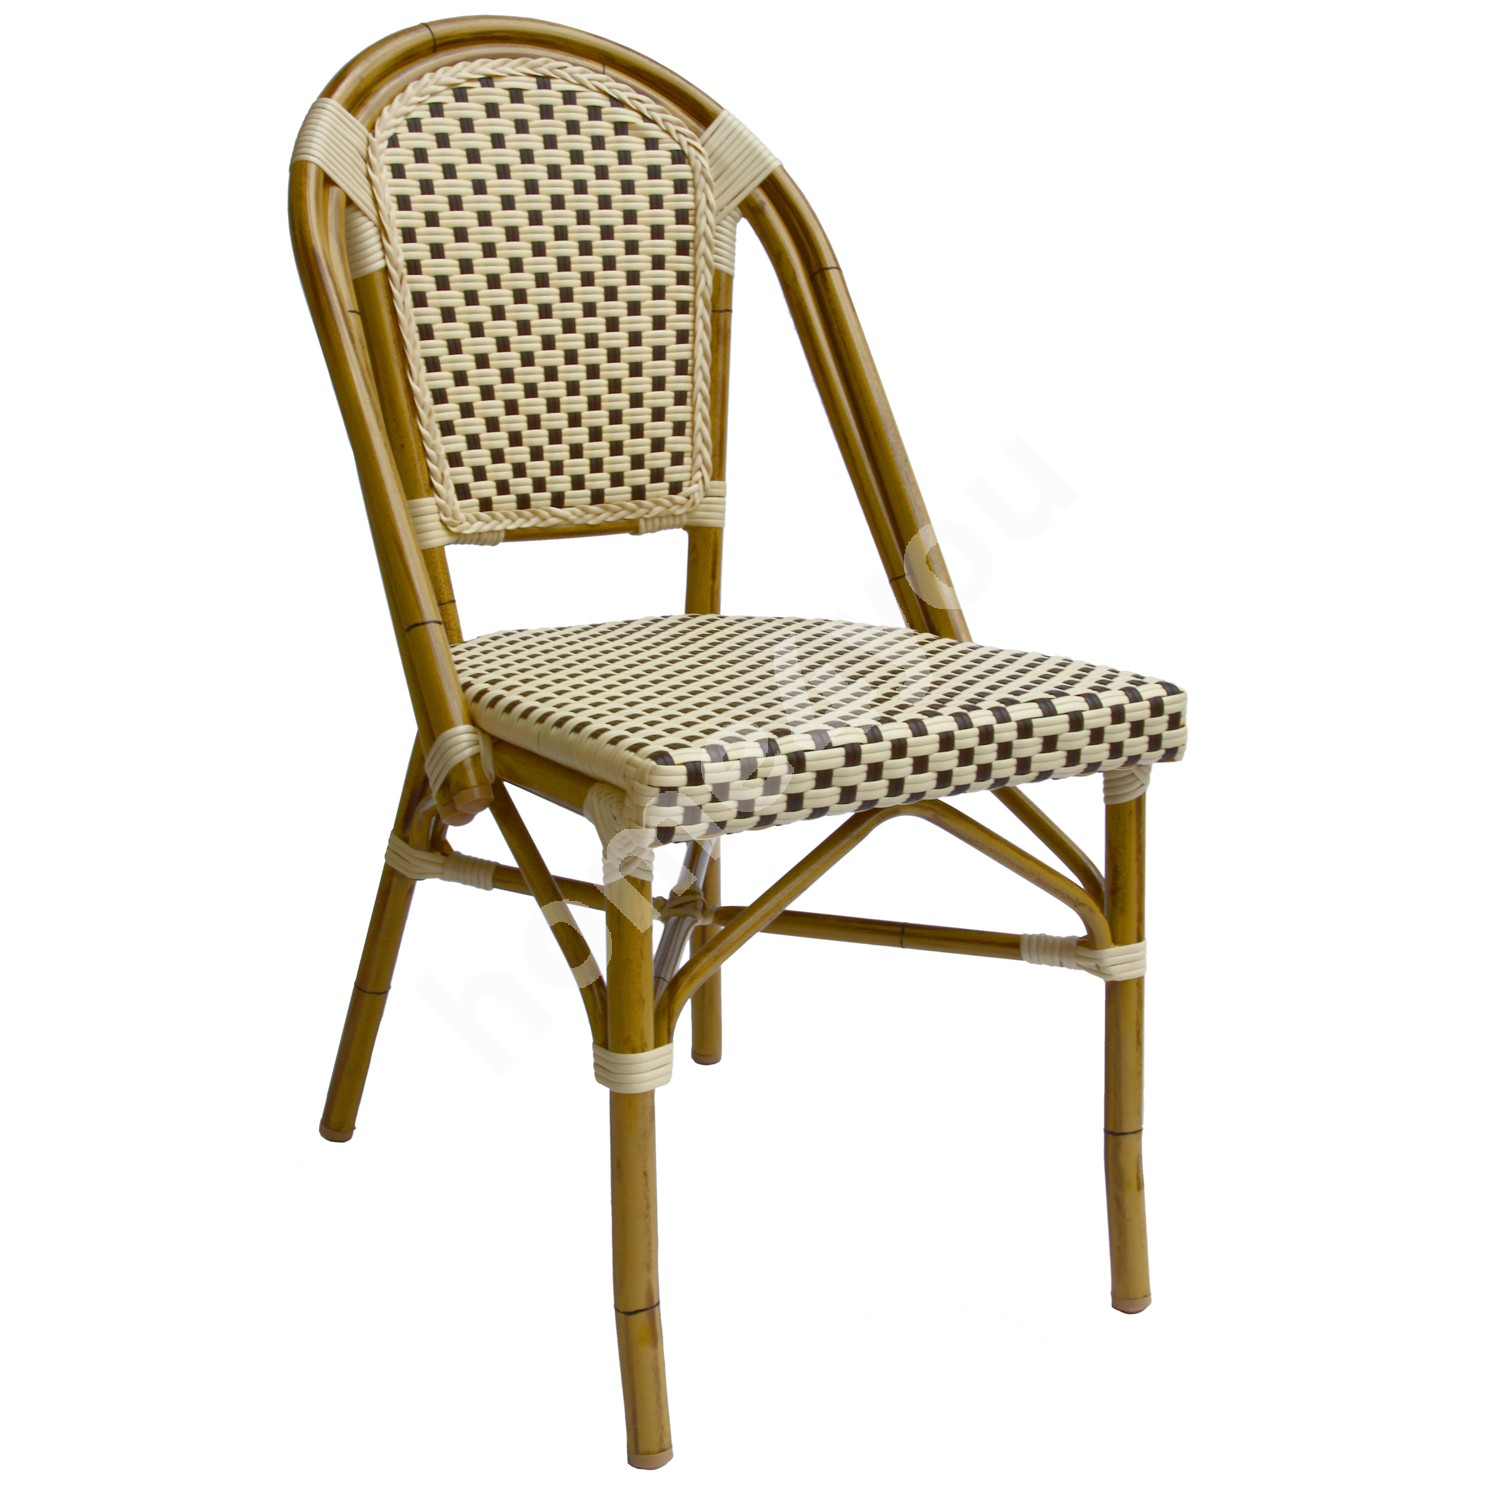 Chair BAMBUS 46x55xH88cm, seat and back rest: plastic wicker, color: brown-beige, frame: bamboo looking aluminum